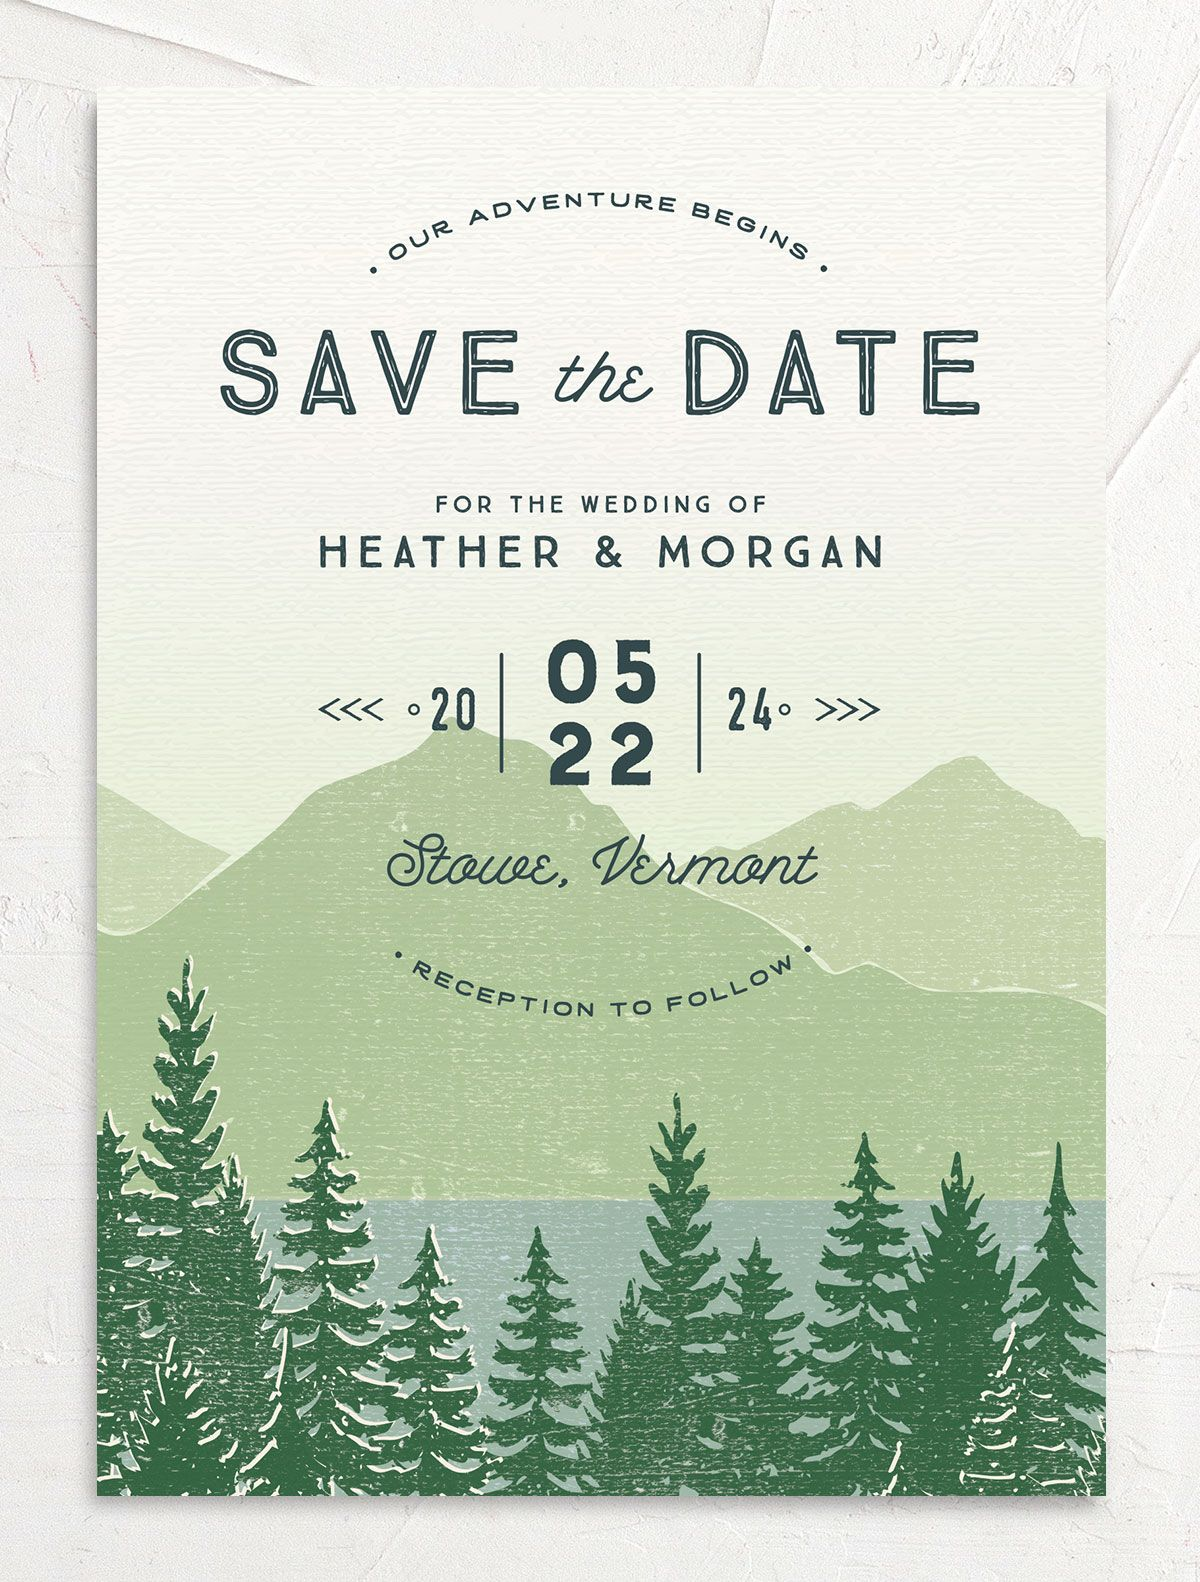 Vintage Mountainside Save the Date card front in green